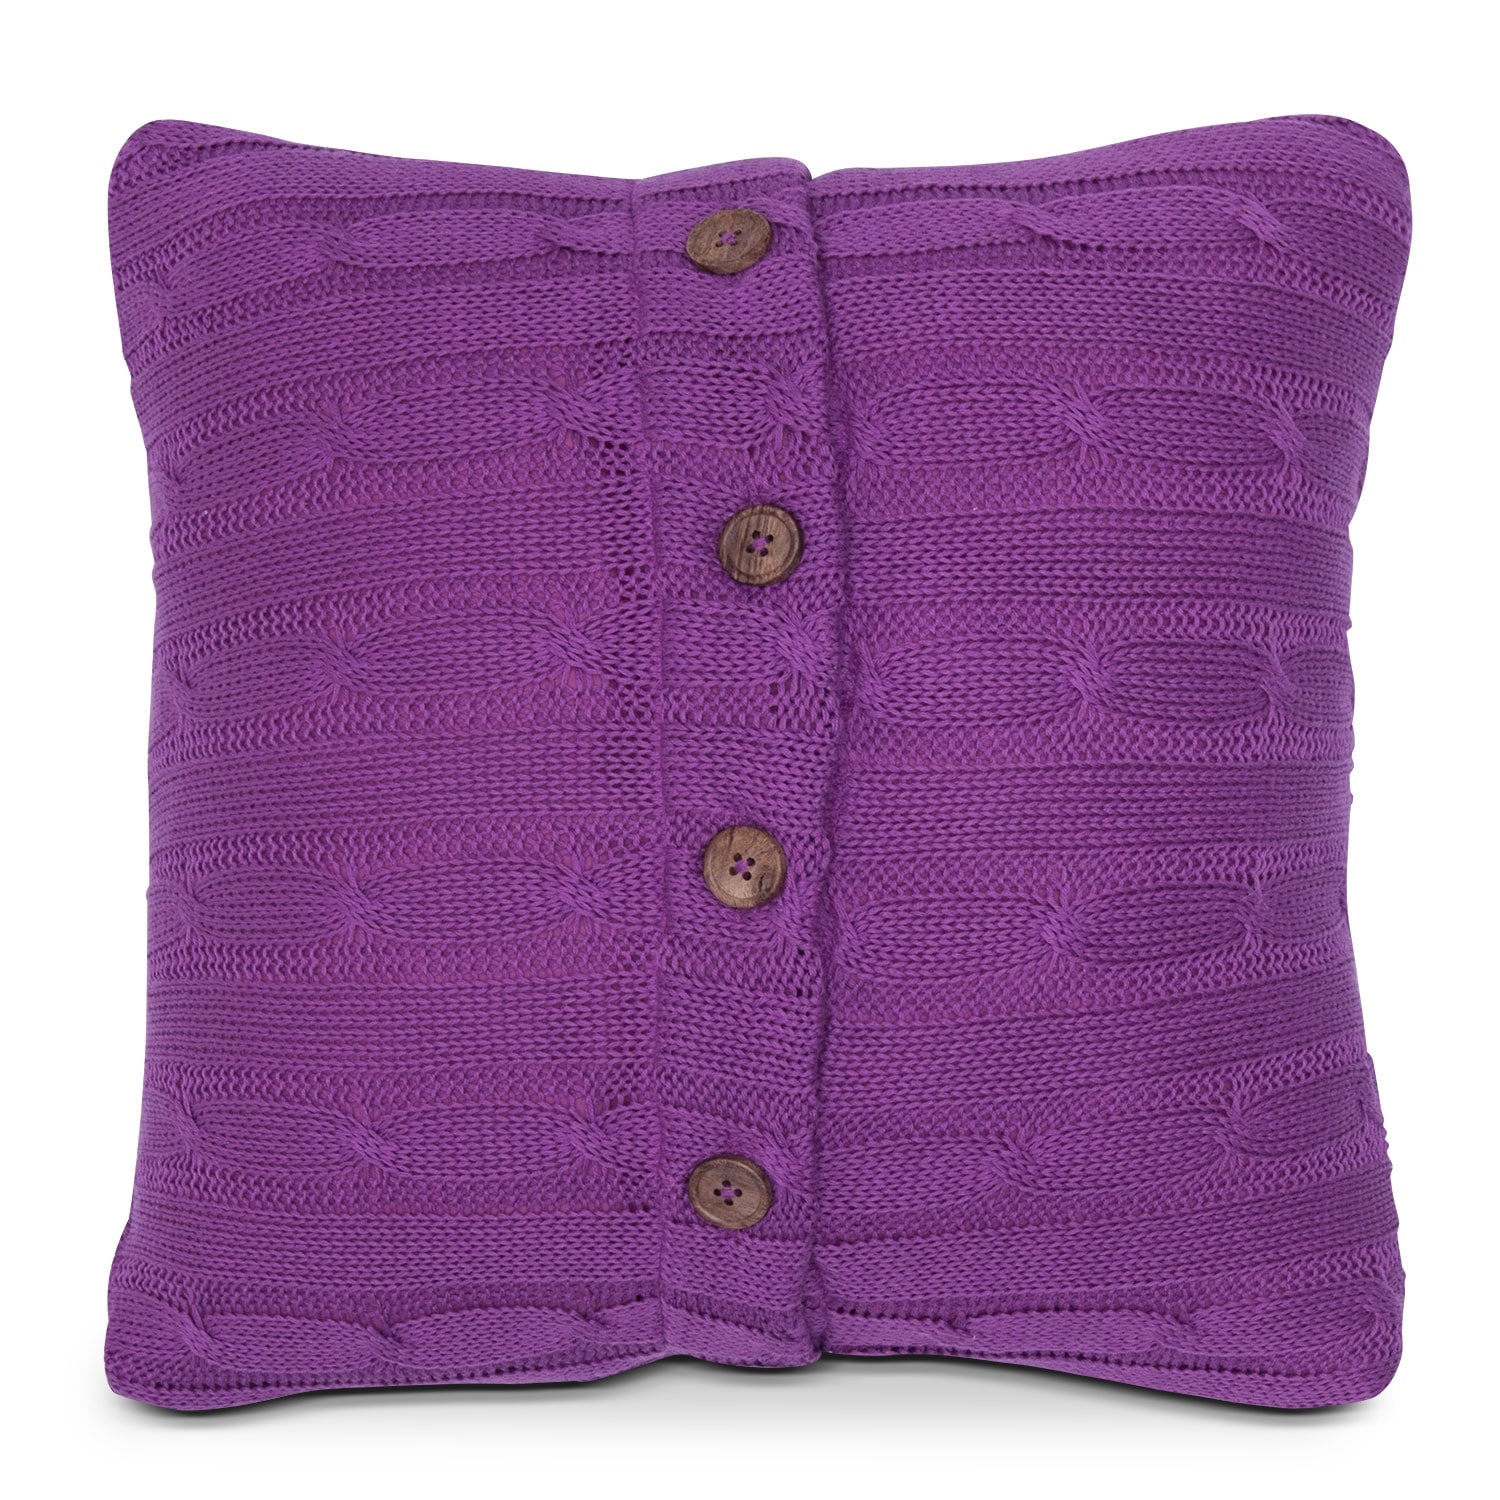 Raspberry Decorative Pillow